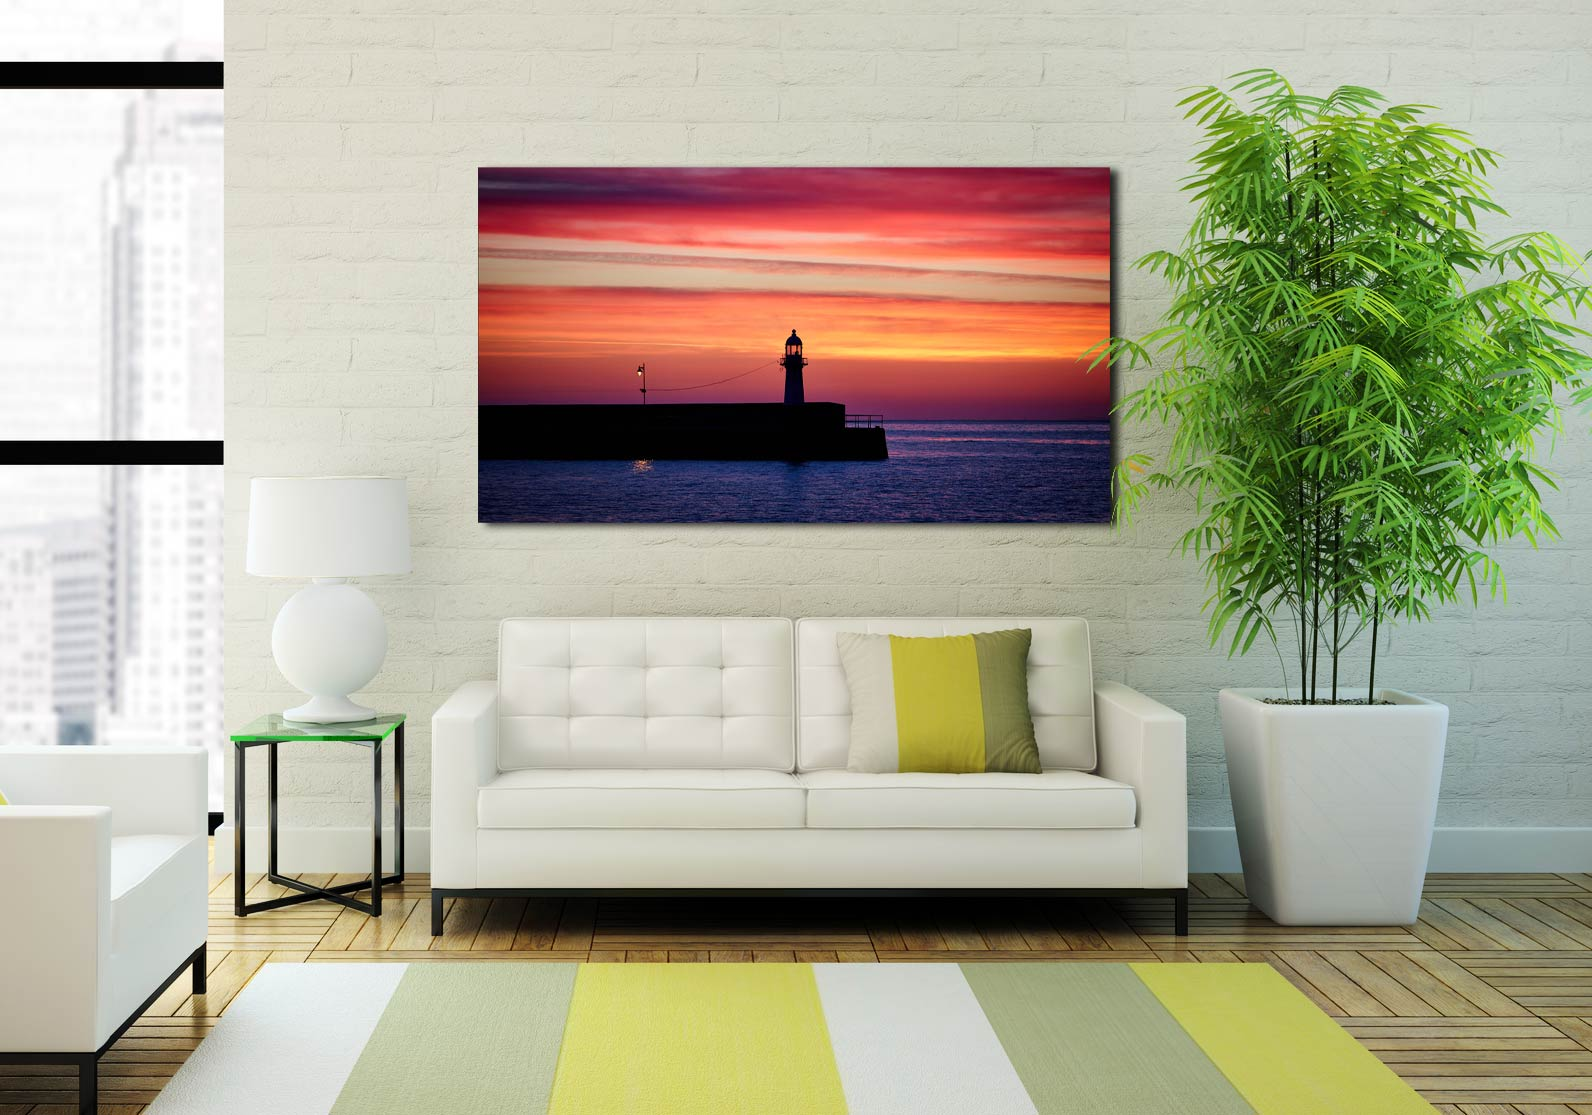 Lighthouse and the Lamp - Print Aluminium Backing With Acrylic Glazing on Wall